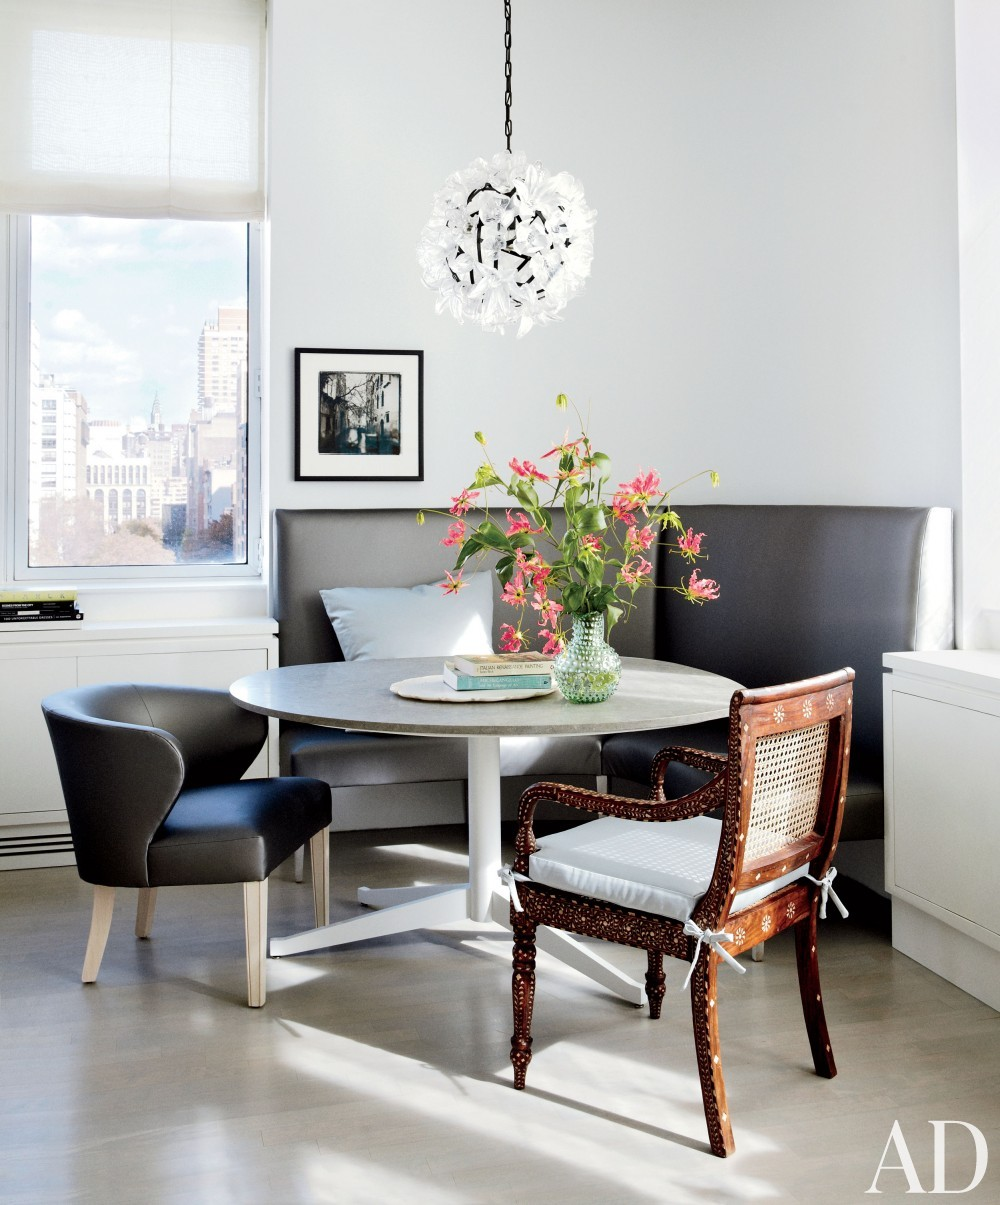 Contemporary Dining Room by Vicente Wolf Associates Inc. in New York, New York